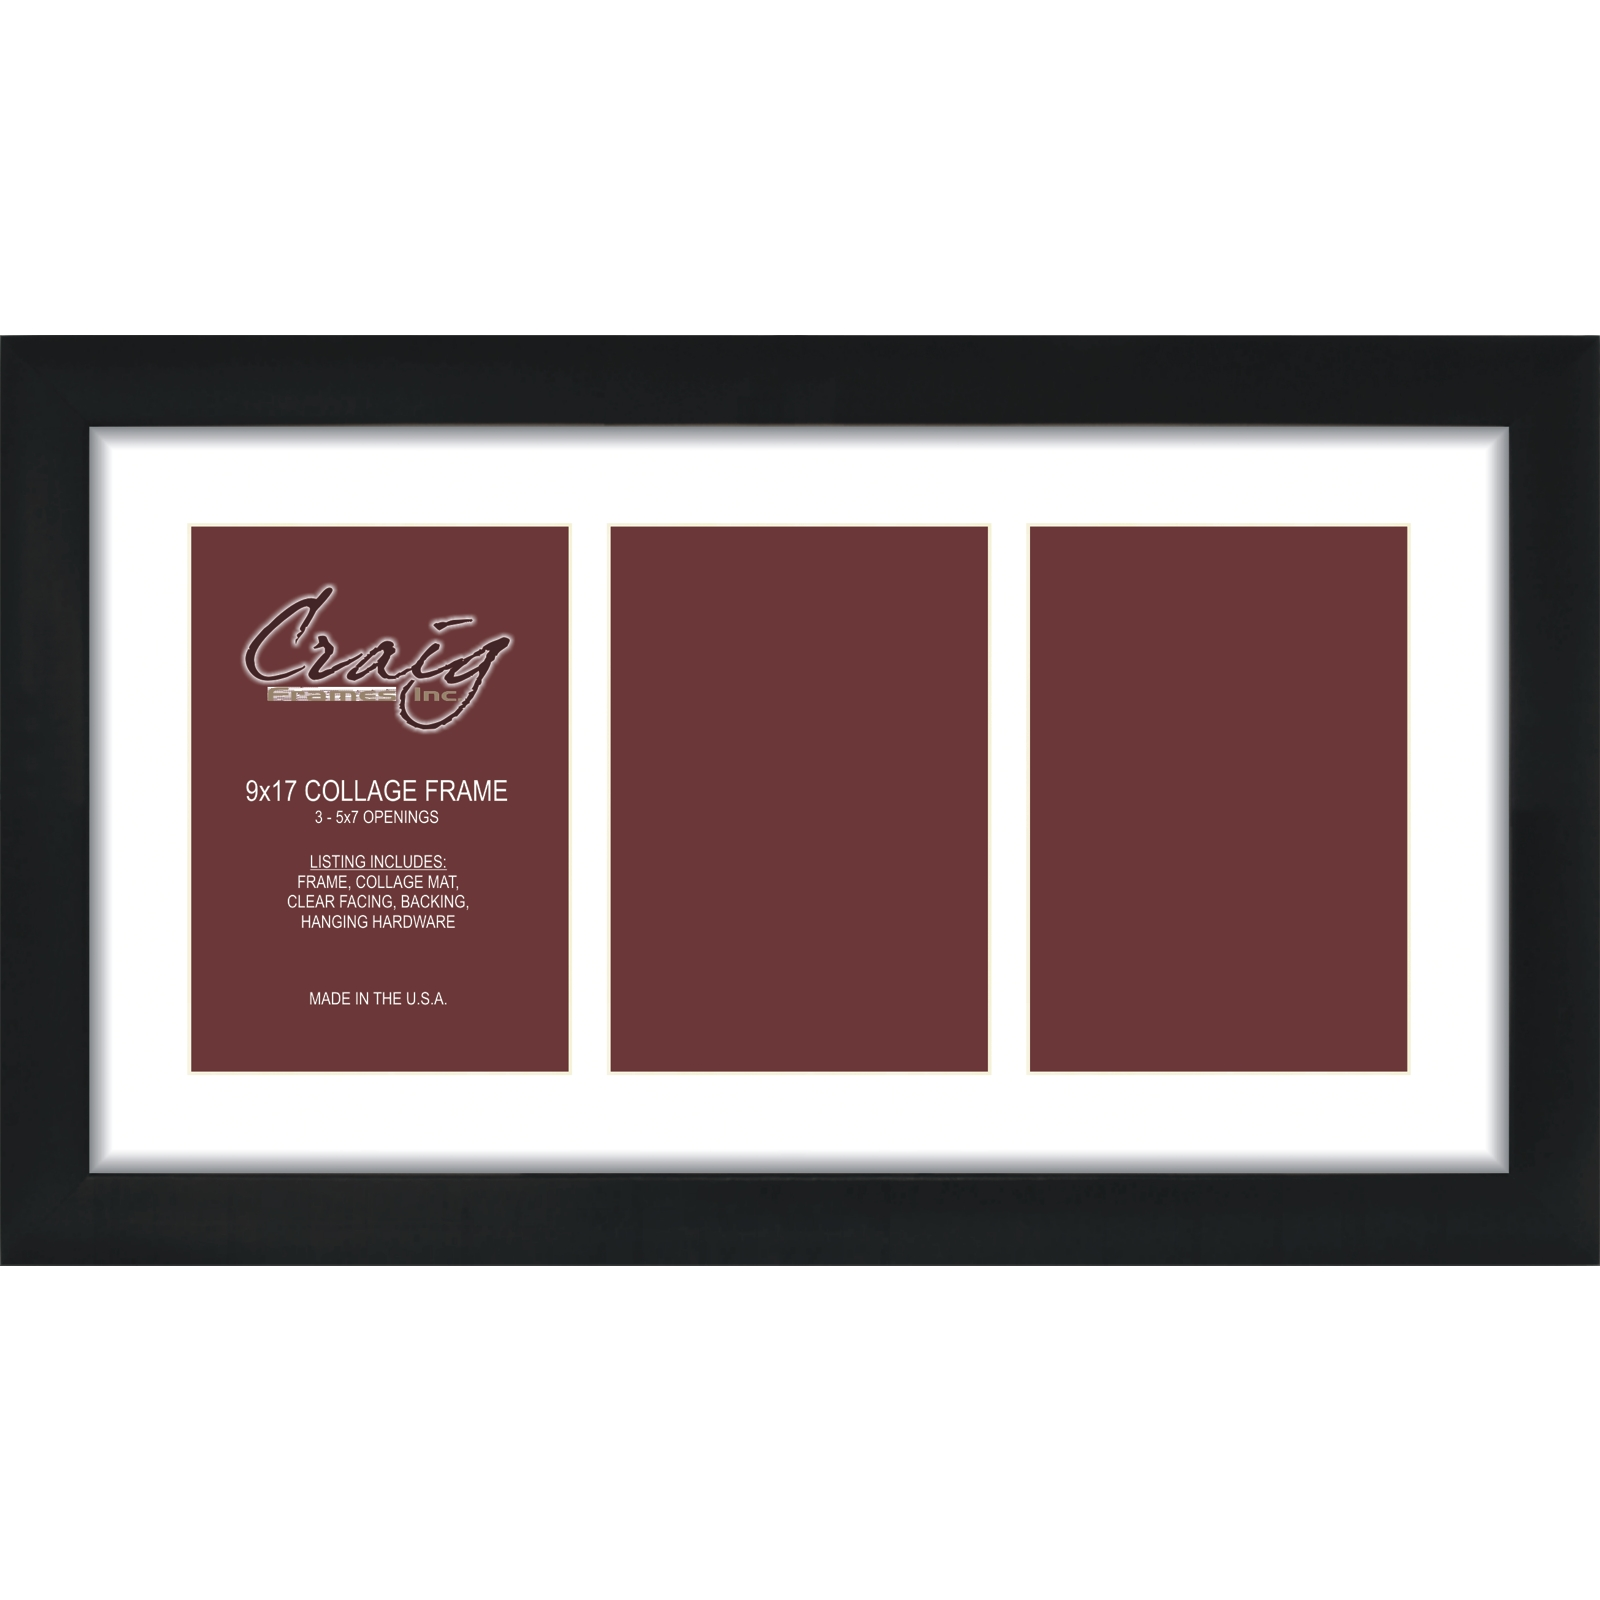 matted shop print satin sale matting guide clearing clrstr black mat frame storms framed gift x